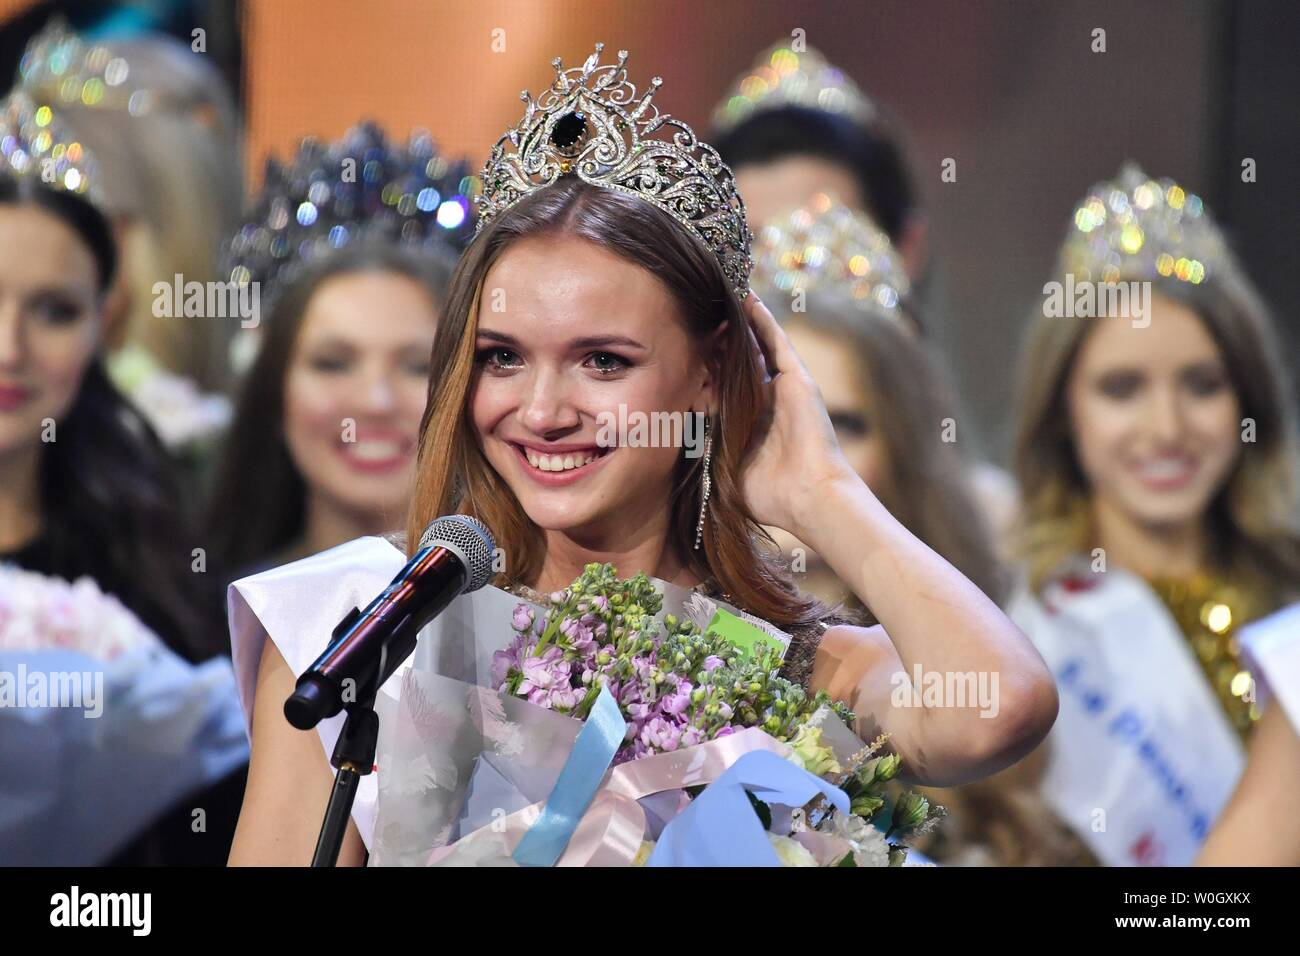 June 26, 2019  - Russia, Moscow  - 2019 Krasa Rossii beauty